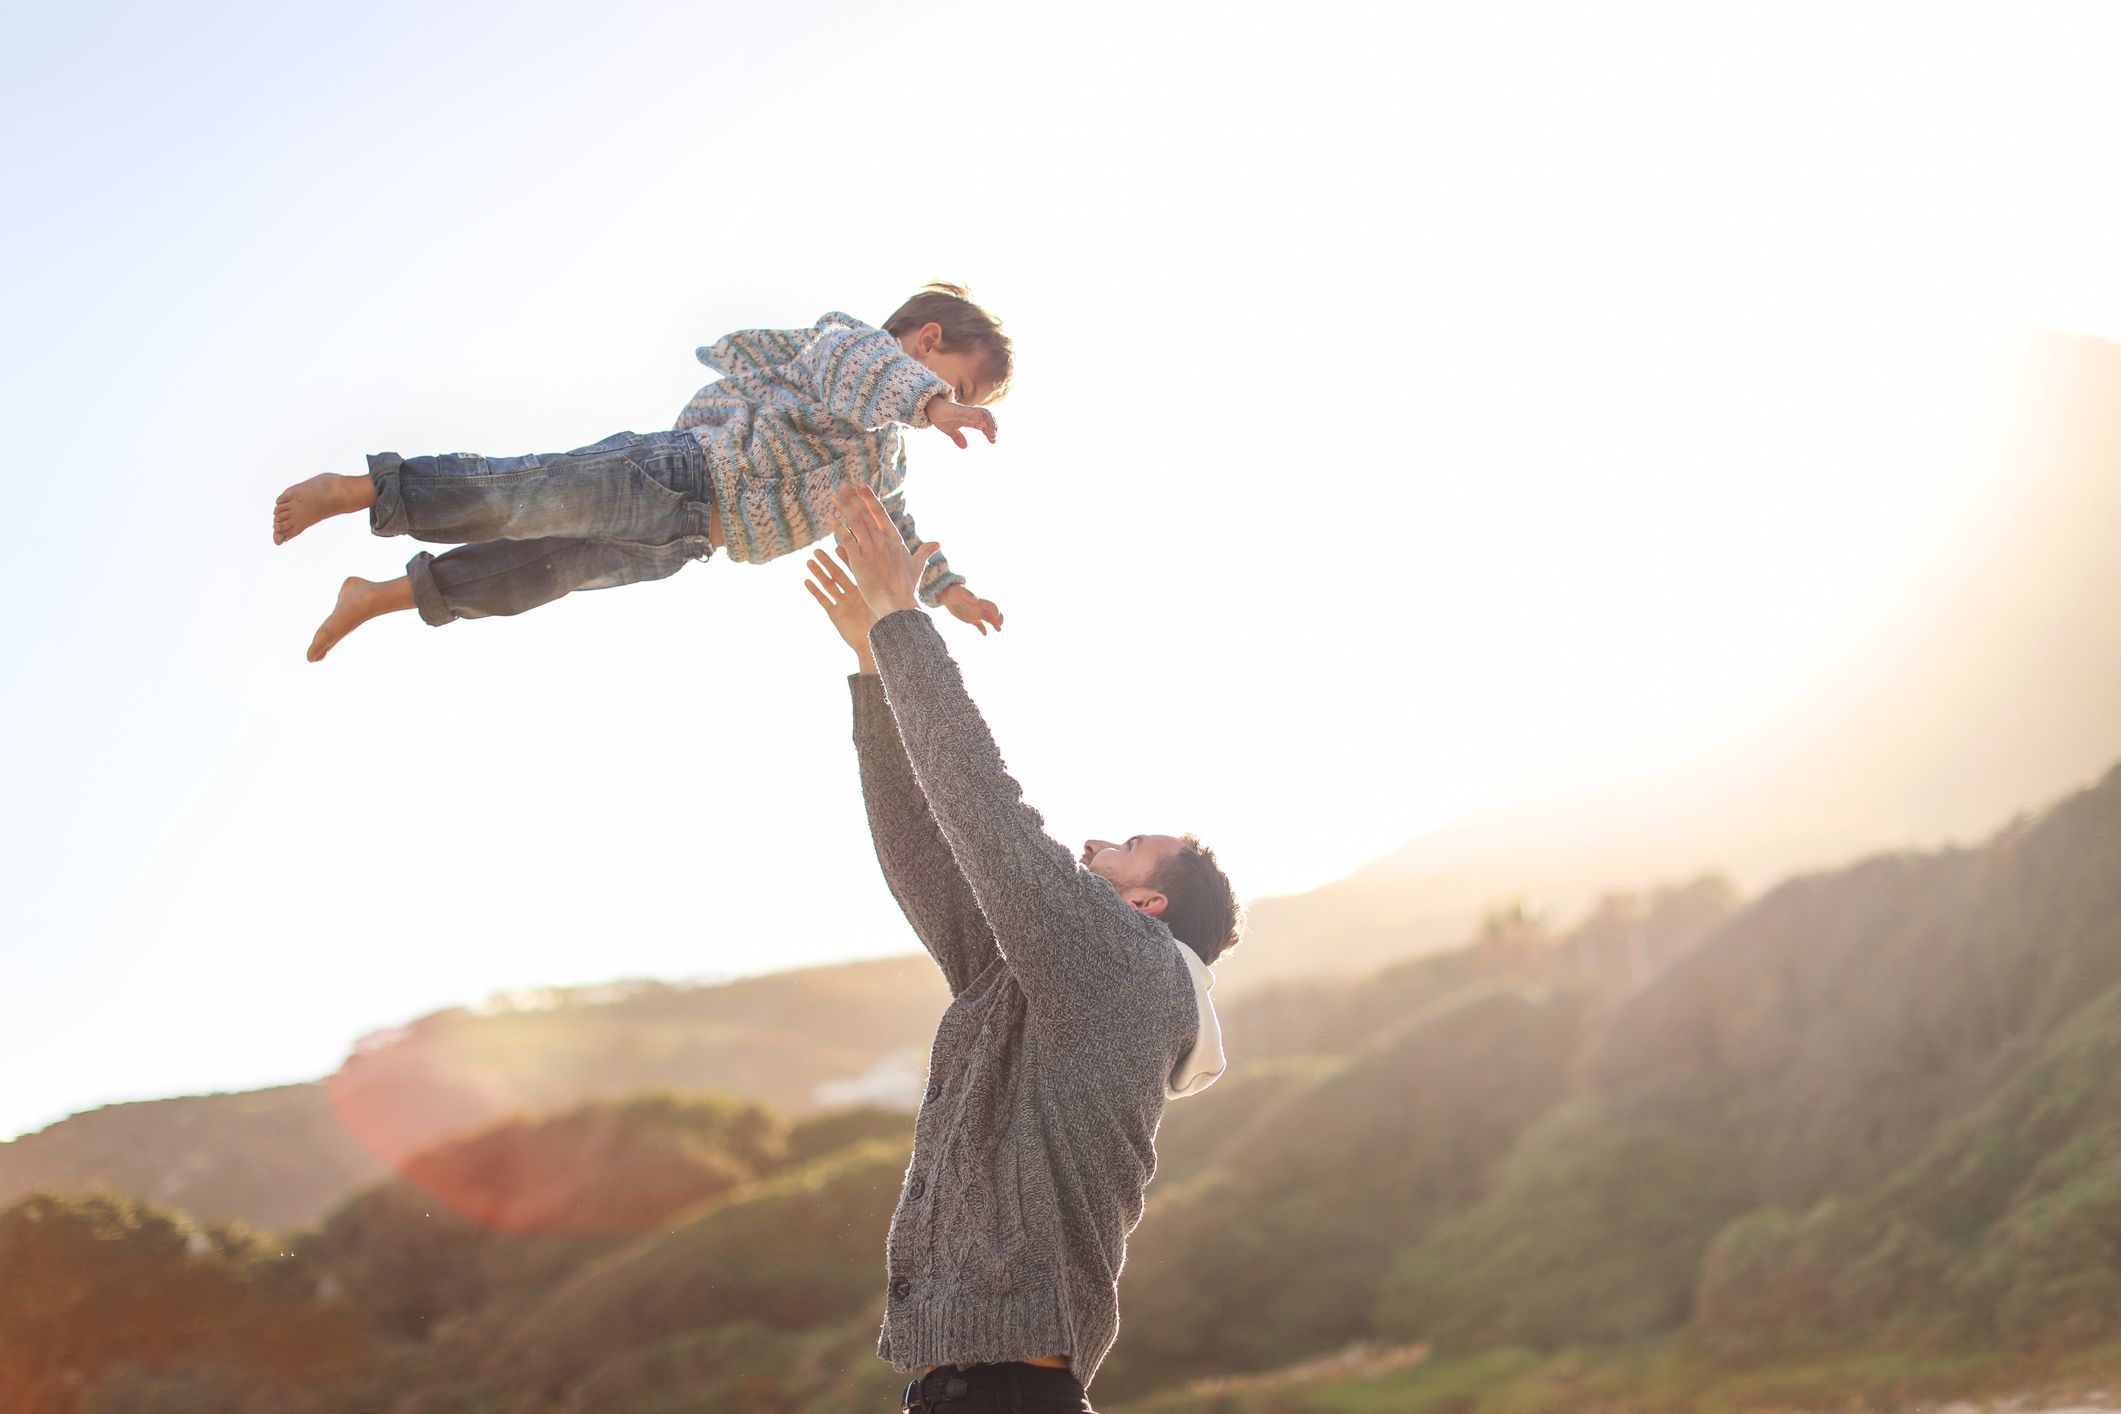 21 Best Father and Son Quotes - Quotes About Dad and Son Relationship